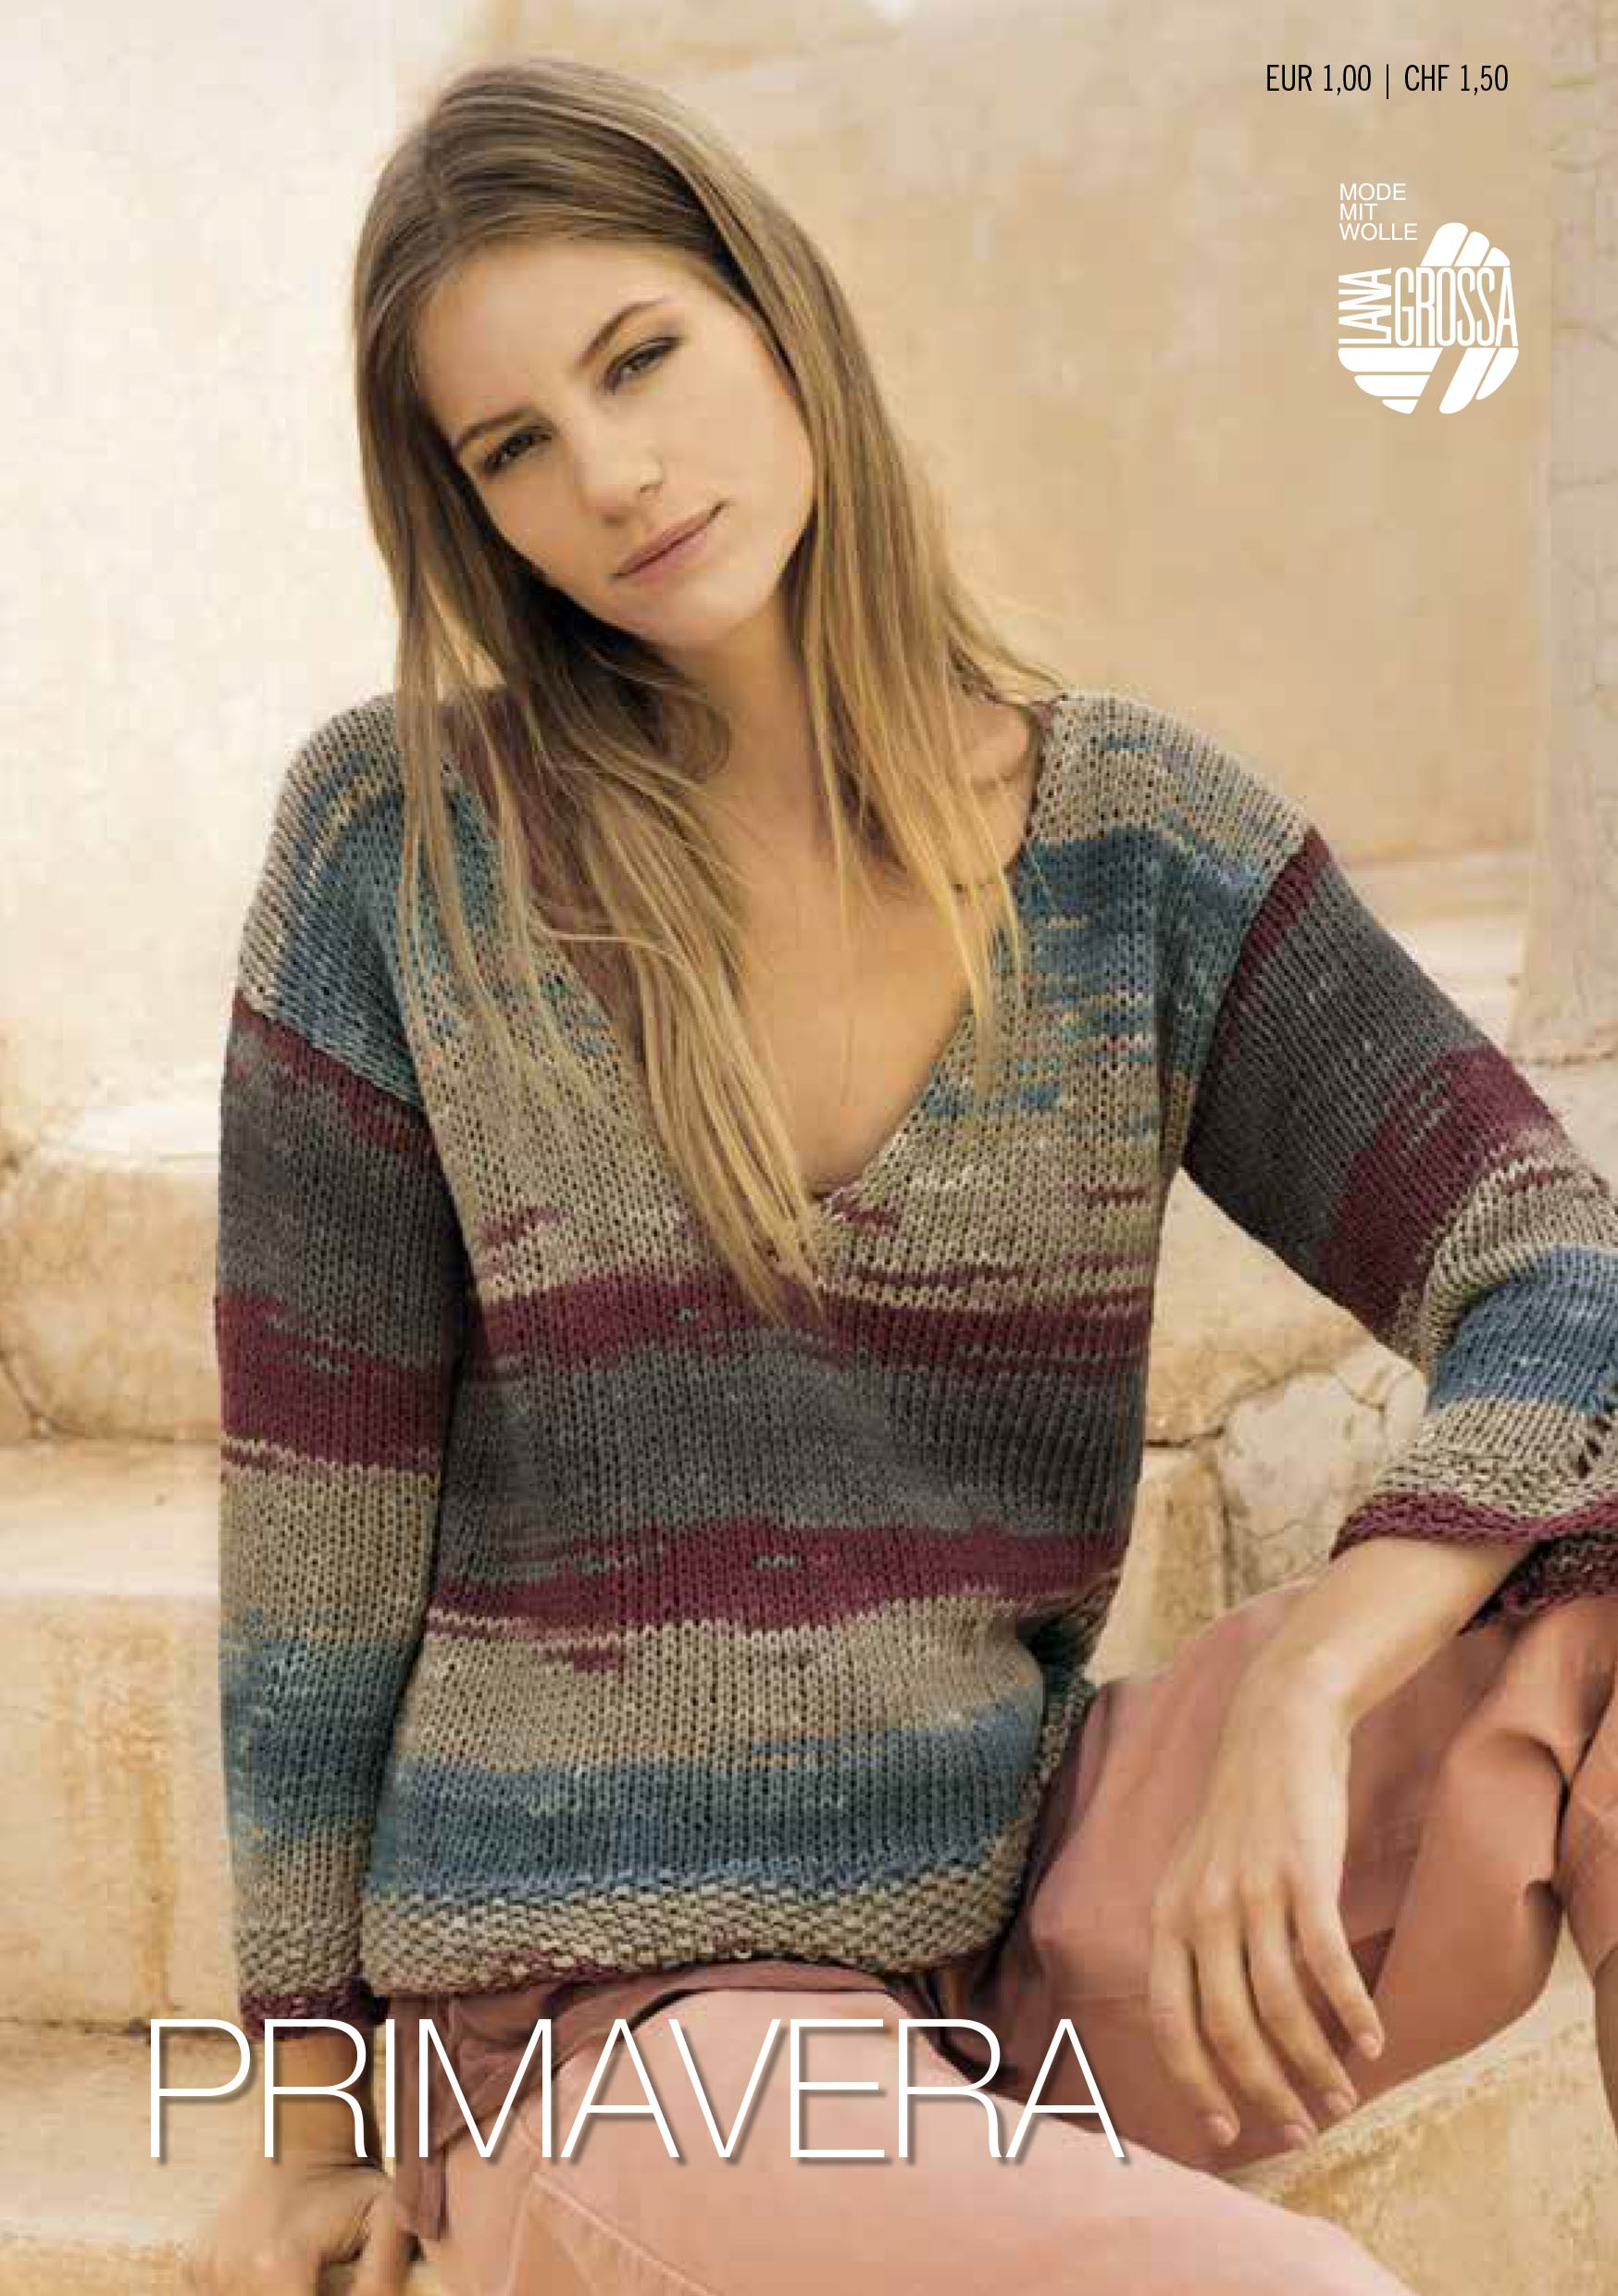 Lana Grossa PRIMAVERA Flyer 2018 - Magazine (DE) + Knitting instructions (EN)